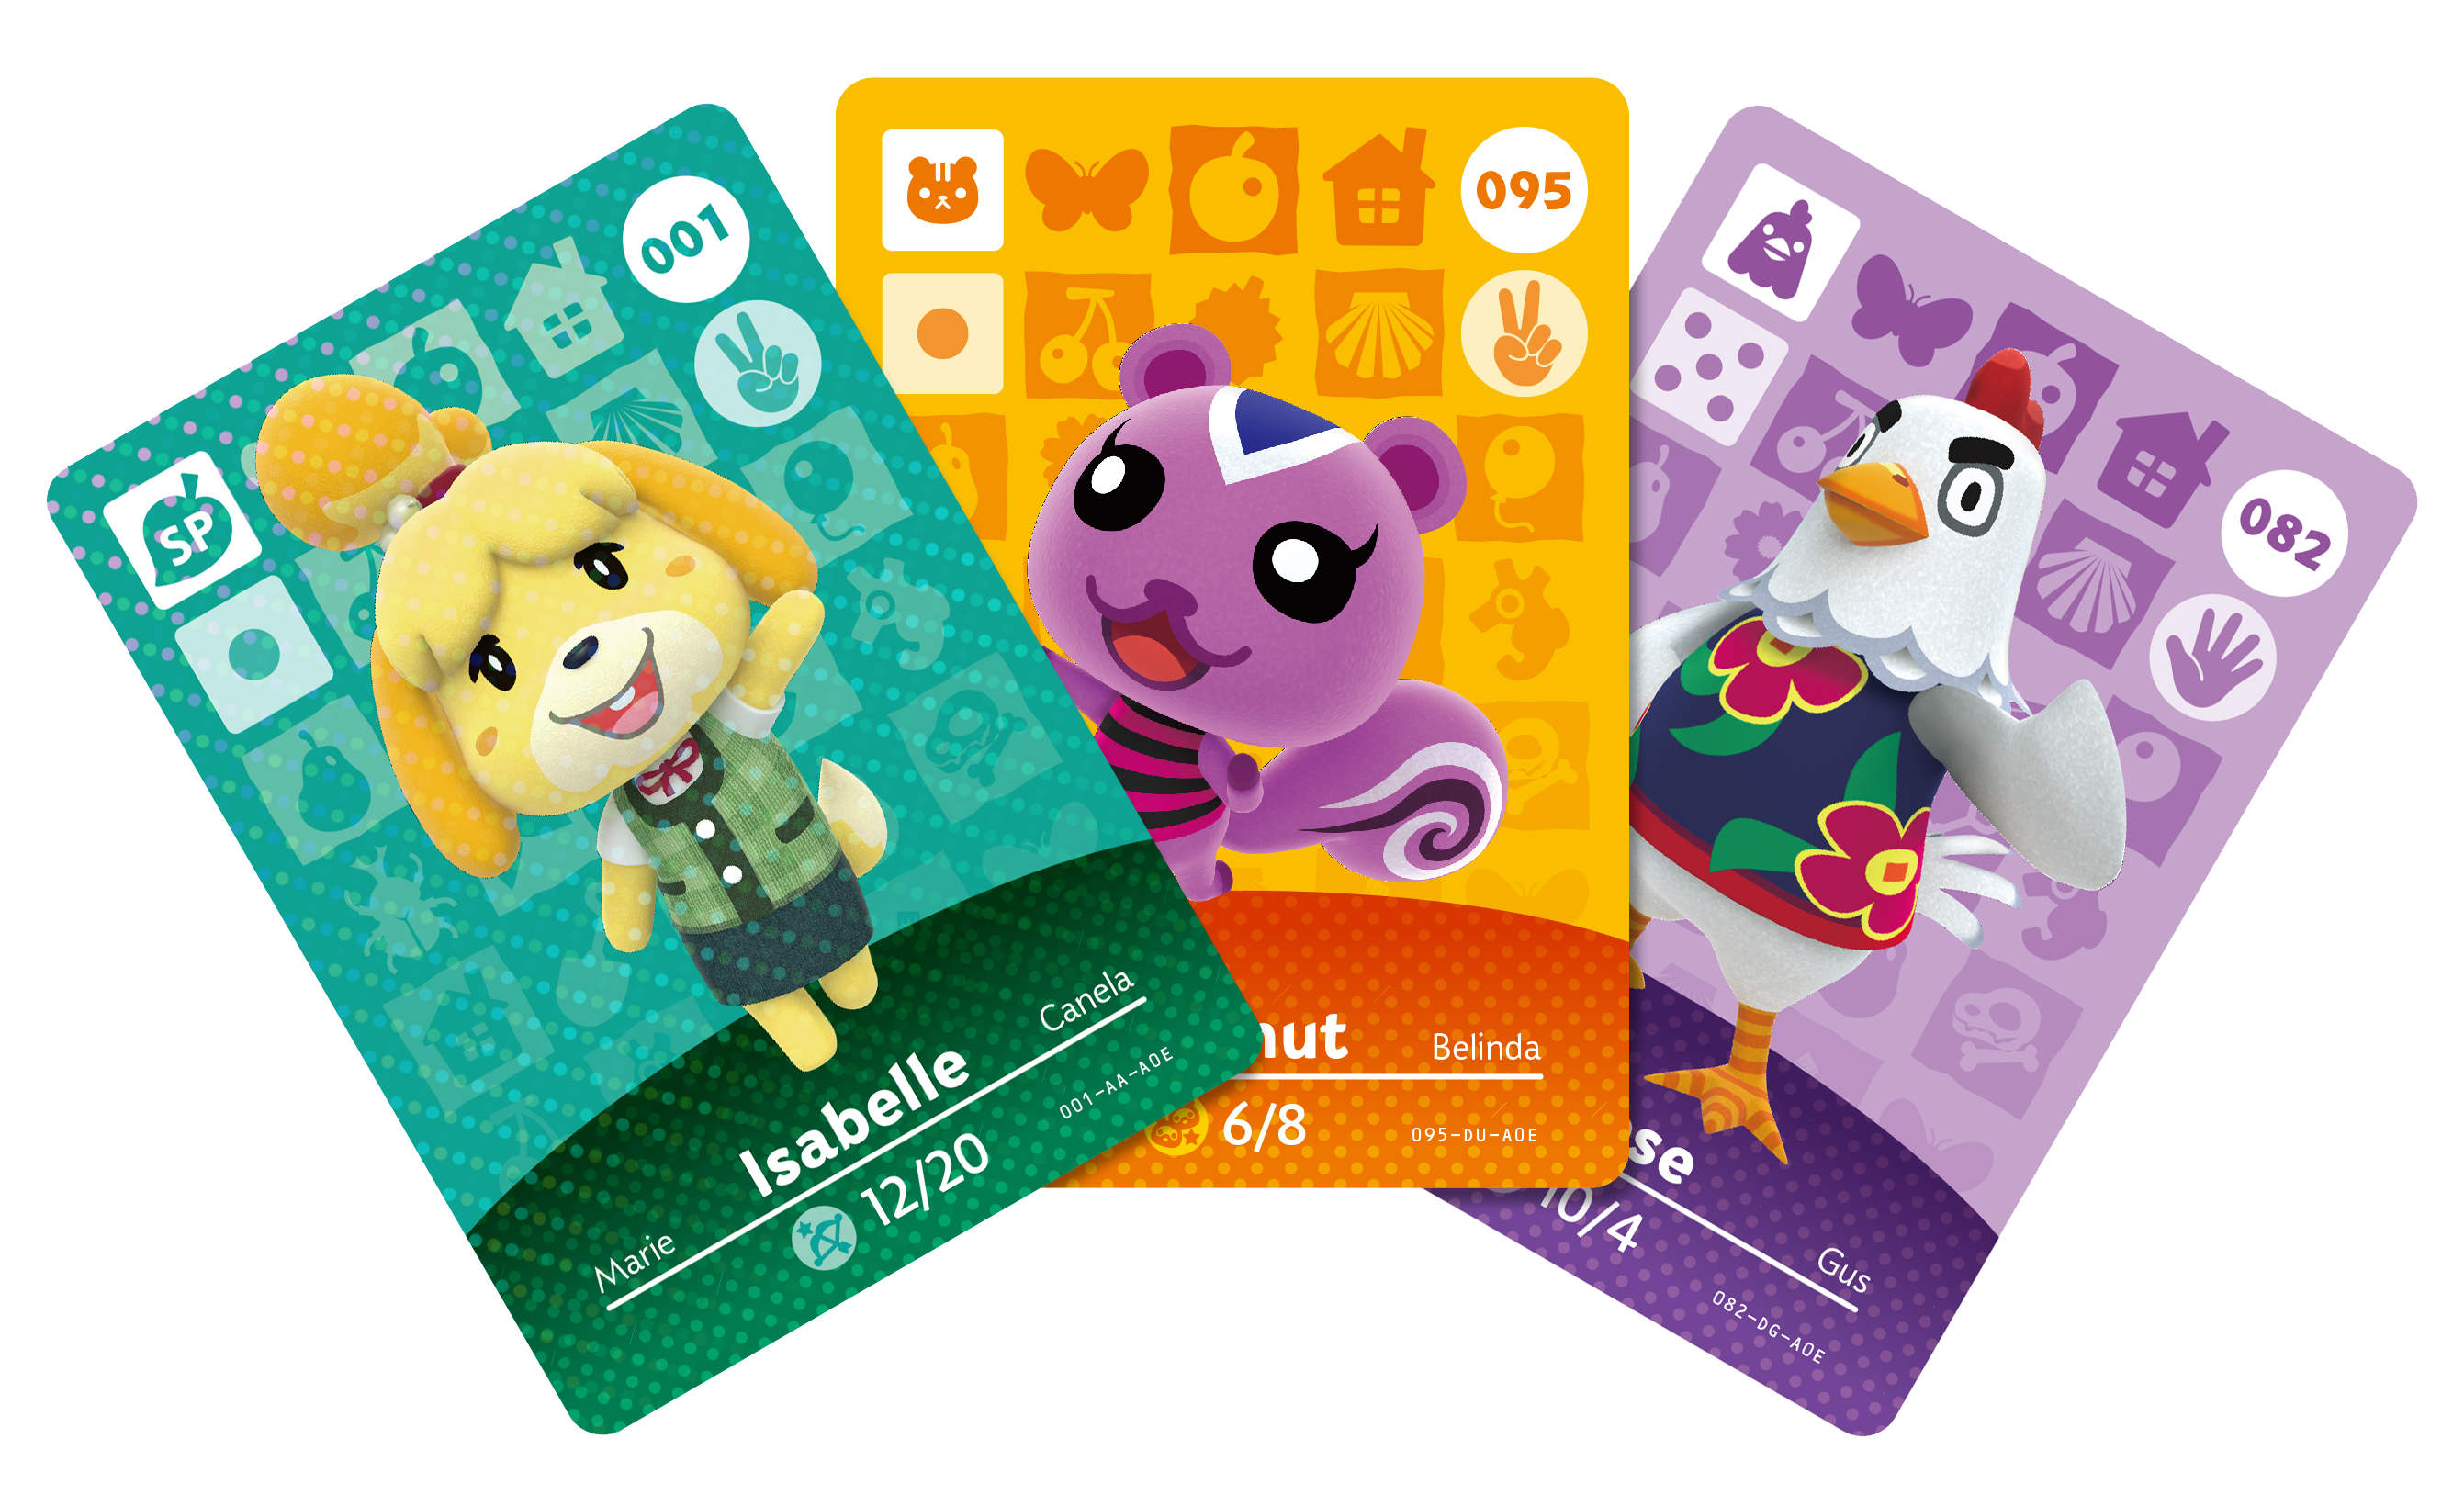 You Can (kind Of) Trade Furniture By Using Amiibo Cards In